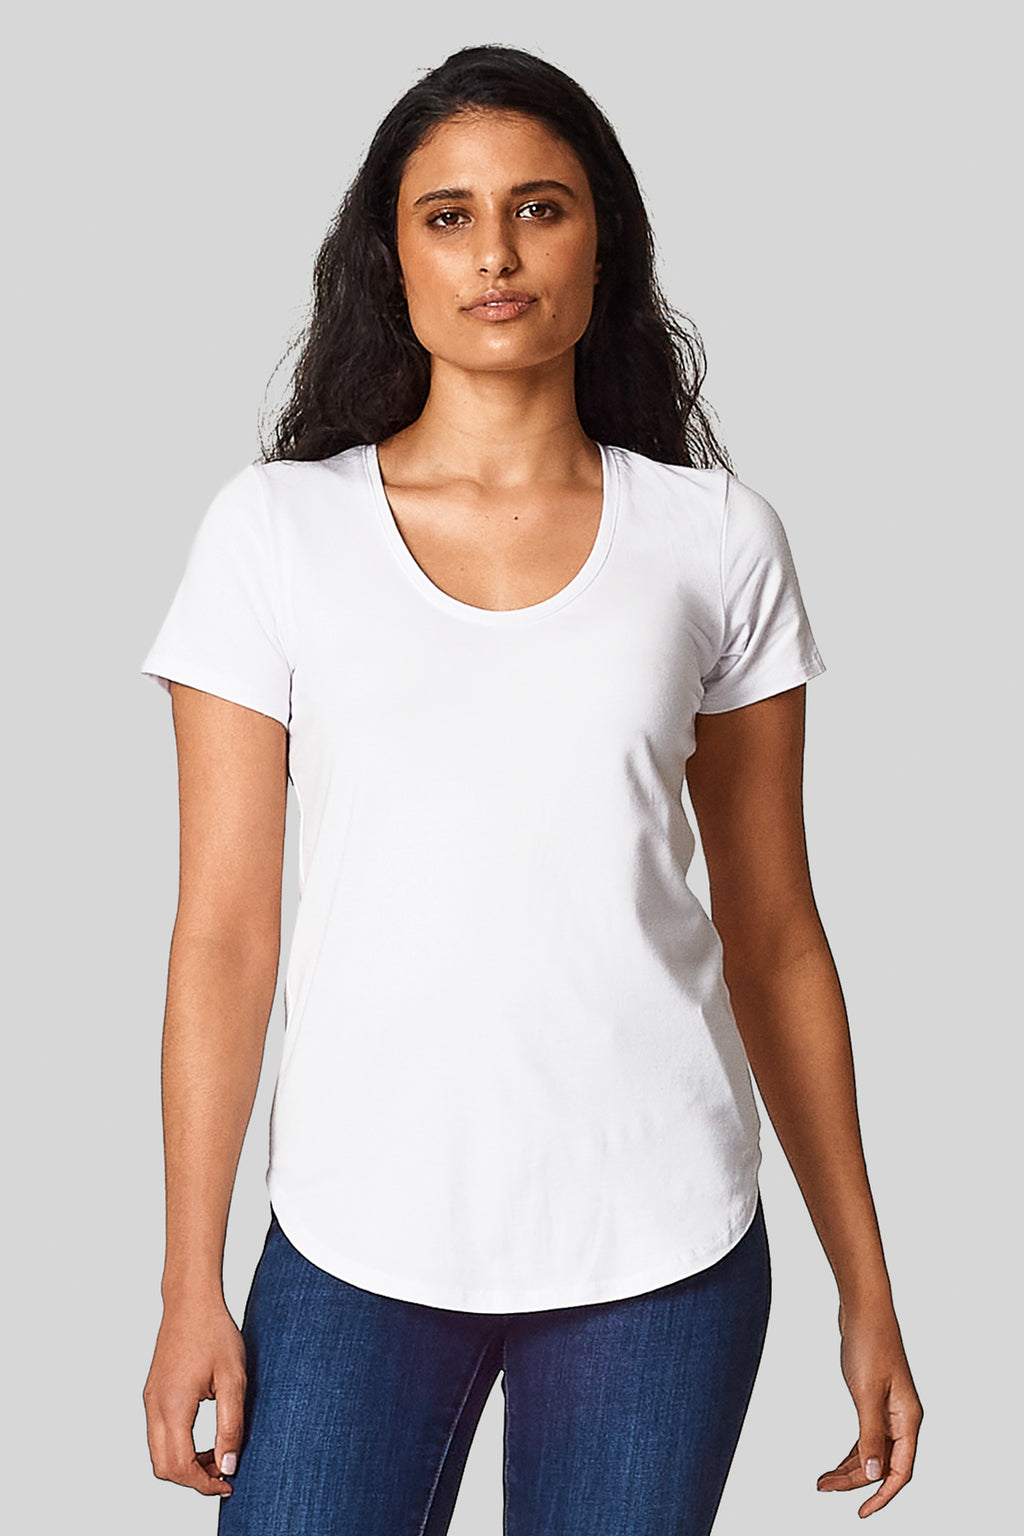 Sweat Society Ethical Activewear Daub Avery Tee Canada USA